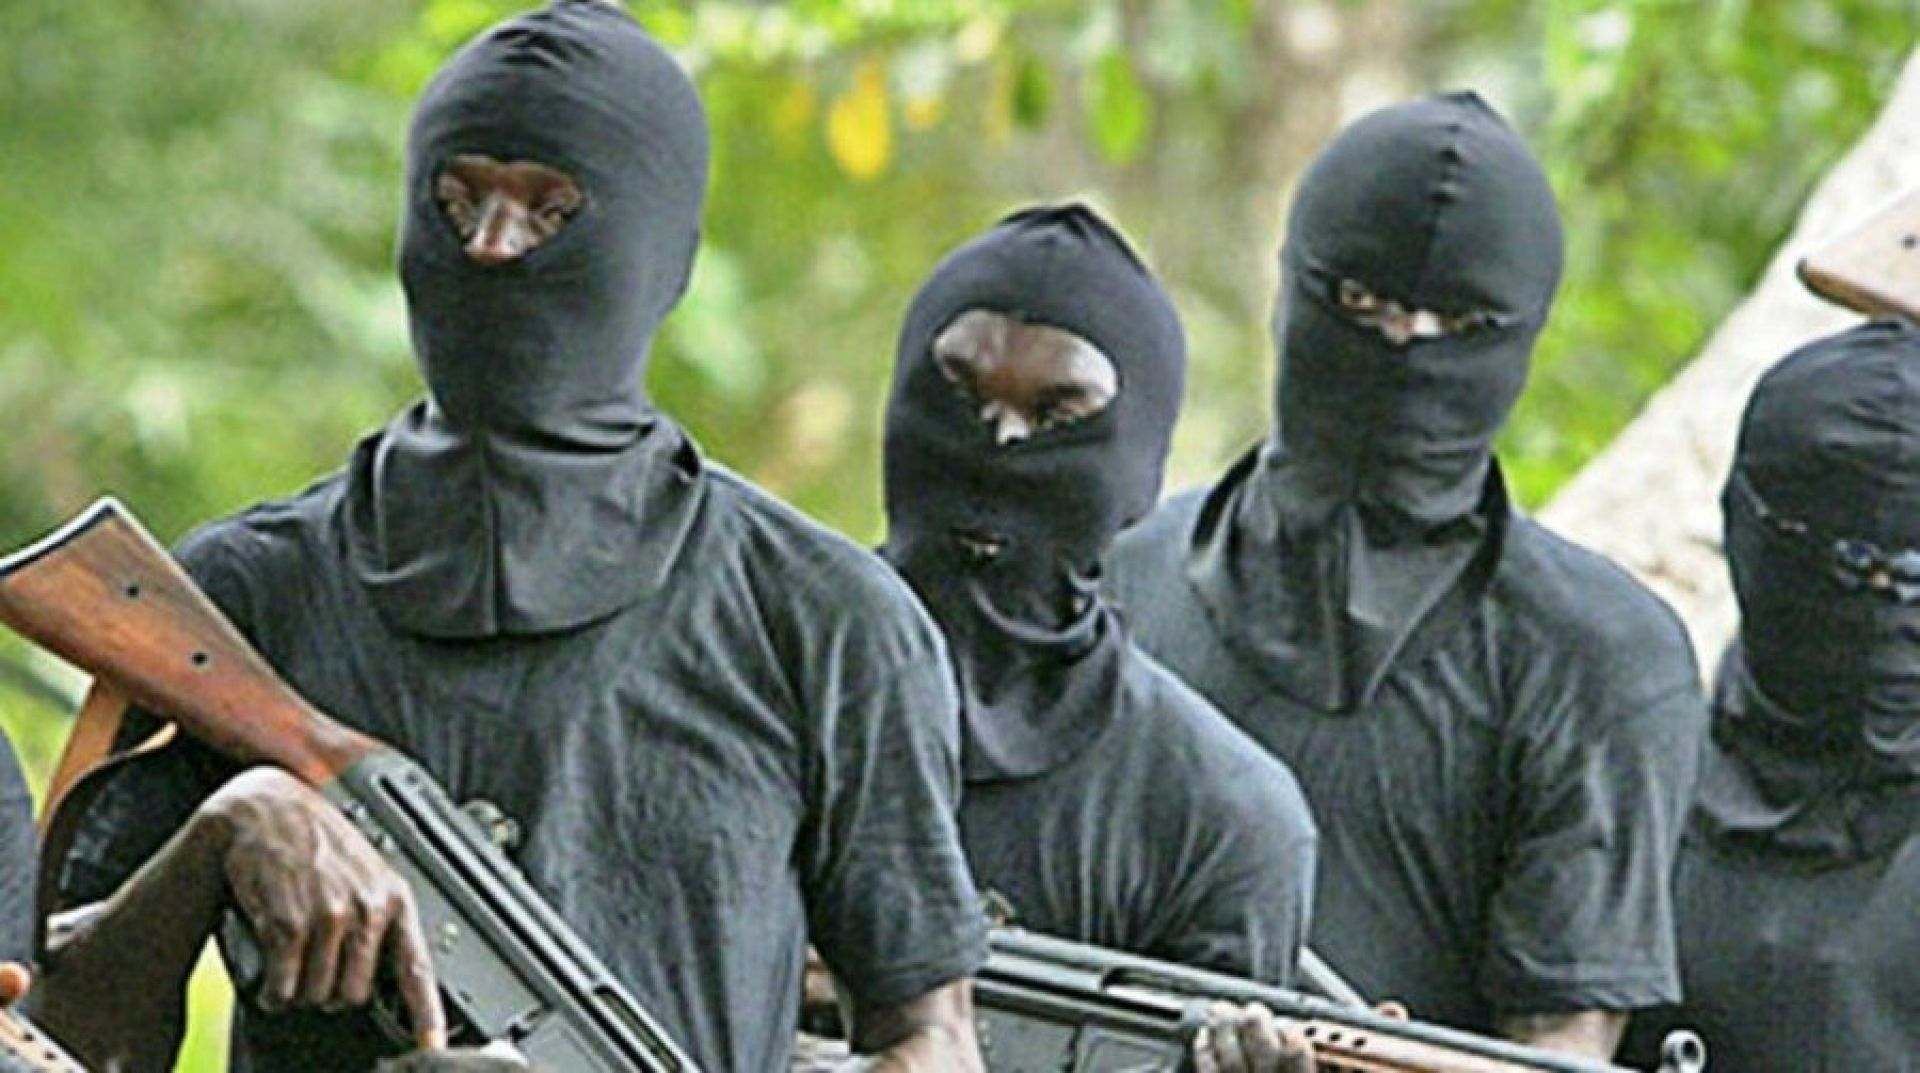 BREAKING: Bandits attack secondary school in Zamfara, kidnap female students